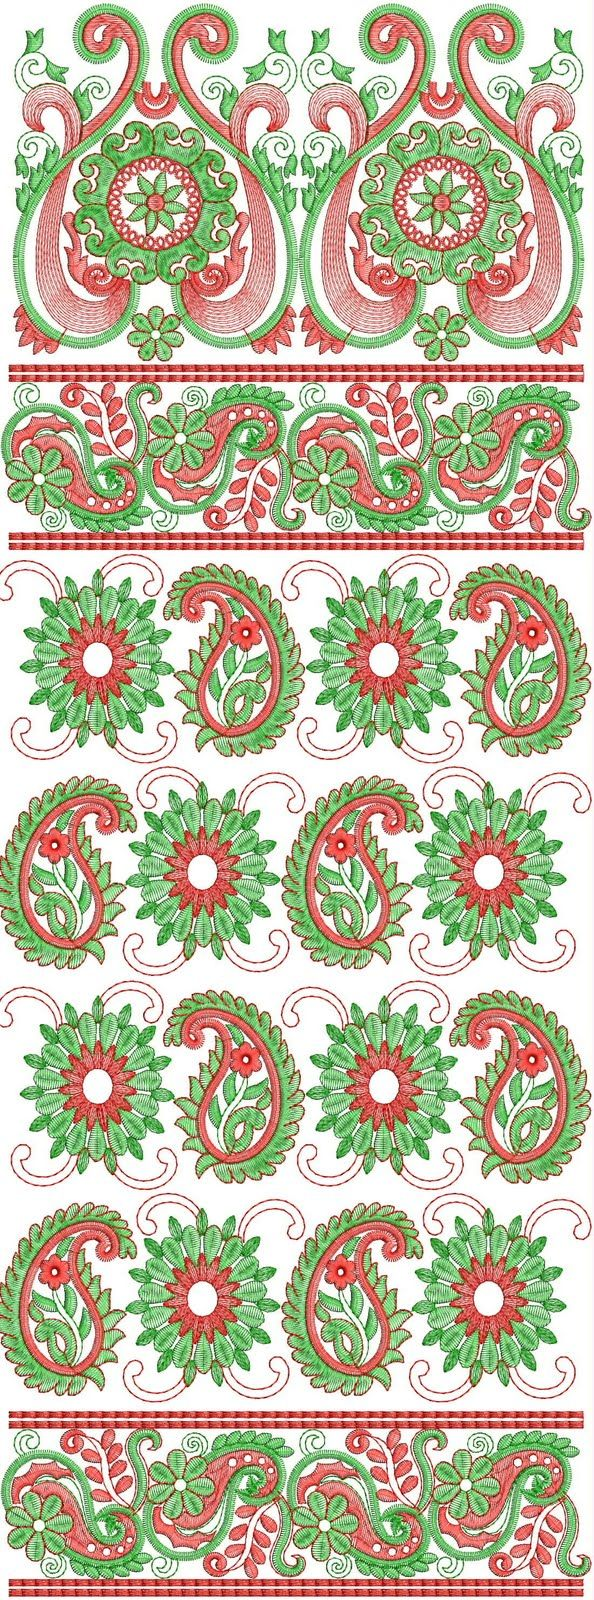 South indian saree embroidery design free download from